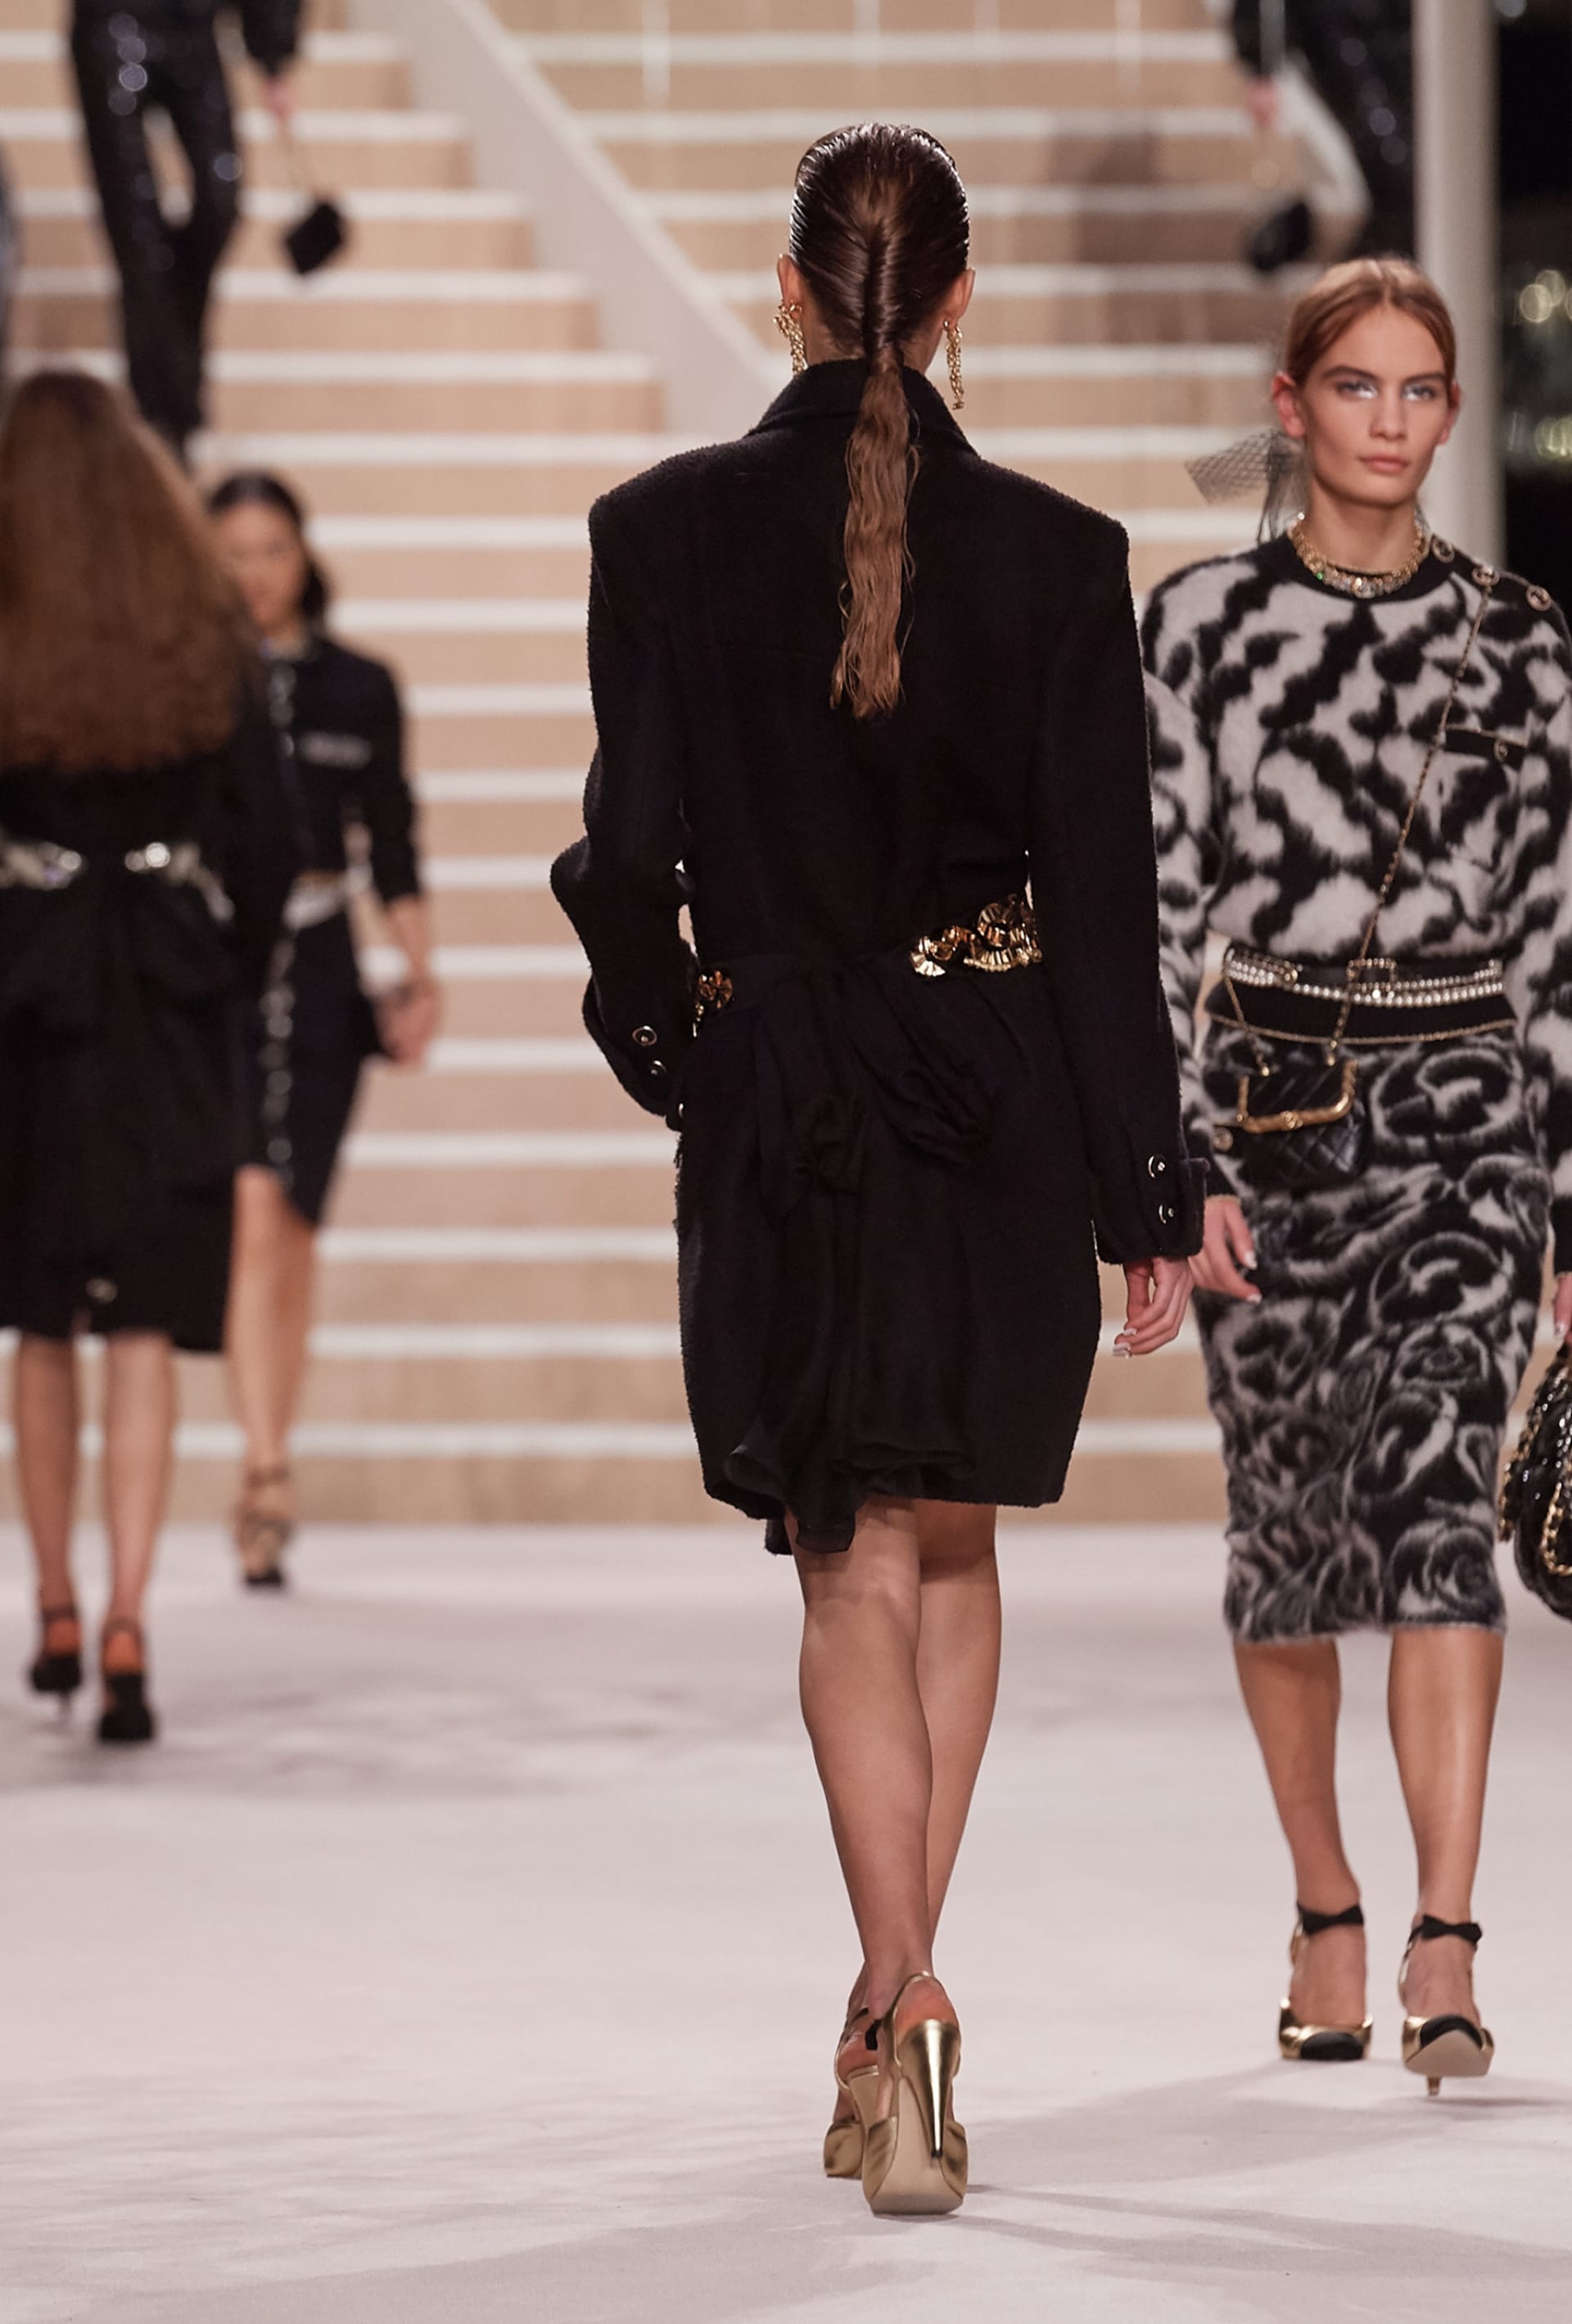 View 4 - Look 4 - Métiers d'Art 2019/20 - see full sized version